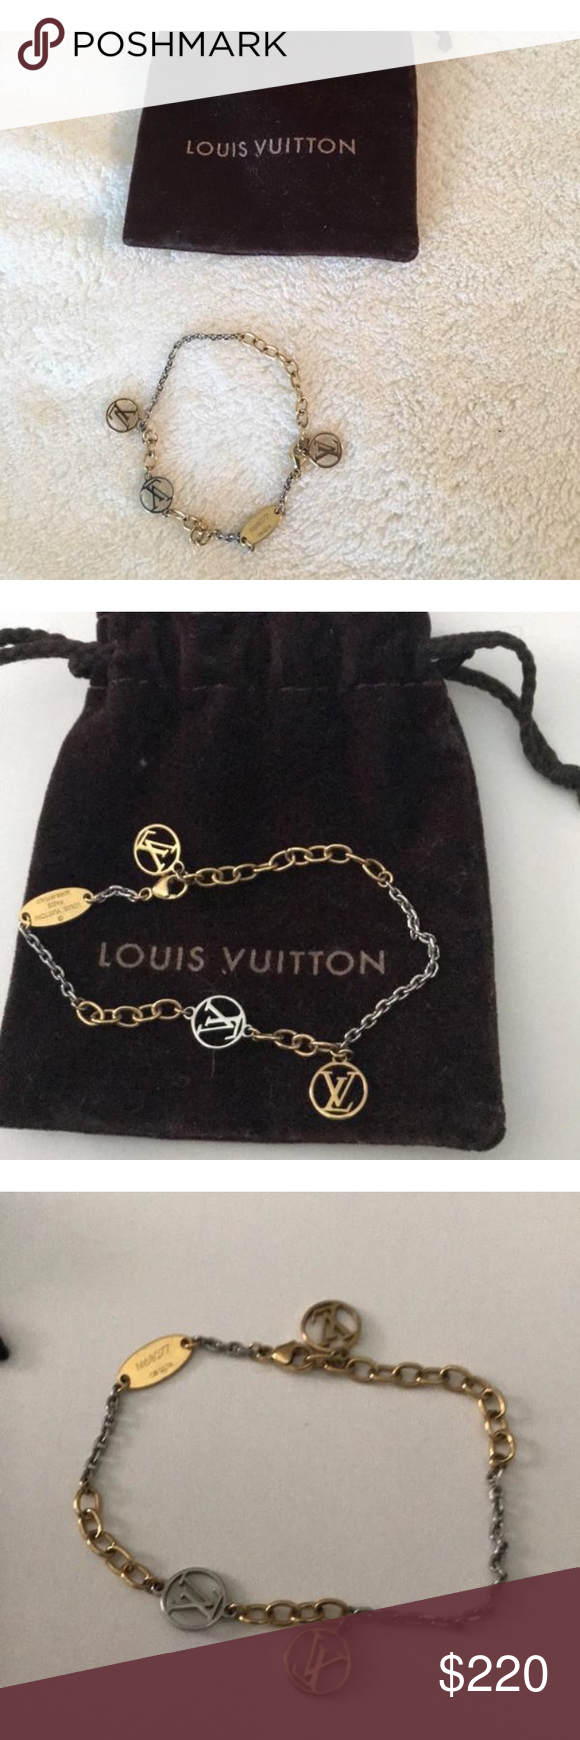 Louis vuitton logomania bracelet louis vuitton louis vuitton